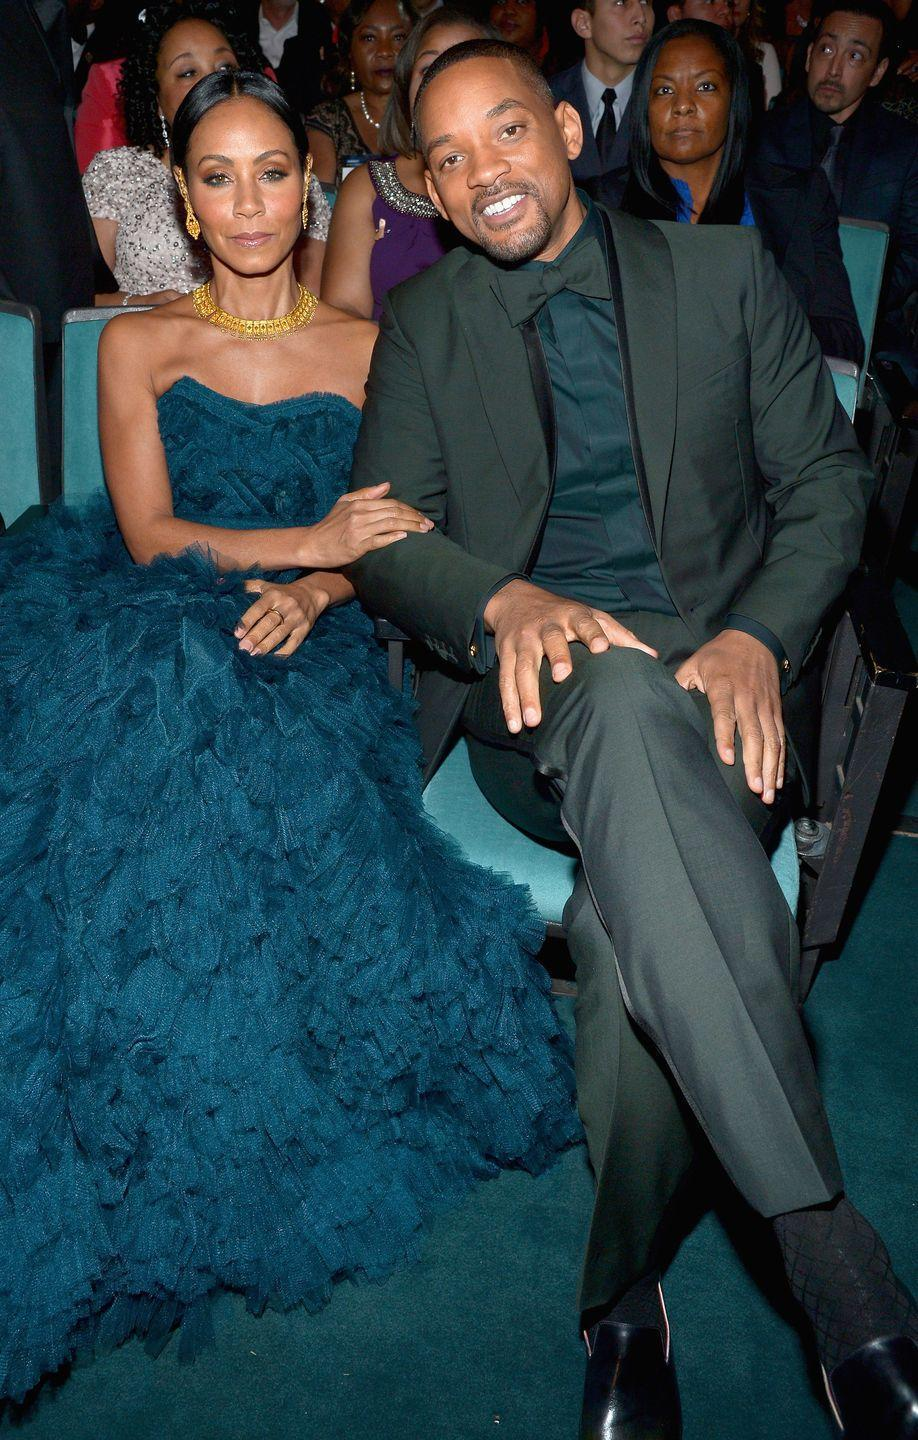 """<p><a href=""""https://www.goodhousekeeping.com/life/relationships/news/a47515/will-smith-and-jada-pinkett-smith-anniversary/"""" rel=""""nofollow noopener"""" target=""""_blank"""" data-ylk=""""slk:Will Smith and Jada Pinkett Smith"""" class=""""link rapid-noclick-resp"""">Will Smith and Jada Pinkett Smith</a> were two of the actors who didn't attend the 2016 ceremony because they felt there was <a href=""""https://www.usatoday.com/story/life/movies/2016/02/02/oscars-academy-award-nominations-diversity/79645542/"""" rel=""""nofollow noopener"""" target=""""_blank"""" data-ylk=""""slk:a lack of diversity in the nominations"""" class=""""link rapid-noclick-resp"""">a lack of diversity in the nominations</a> — <span class=""""redactor-invisible-space"""">all 20 actors nominated in the lead and supporting acting categories were white</span>. The hashtag <a href=""""https://twitter.com/hashtag/OscarsSoWhite?src=hash"""" rel=""""nofollow noopener"""" target=""""_blank"""" data-ylk=""""slk:#OscarsSoWhite"""" class=""""link rapid-noclick-resp"""">#OscarsSoWhite</a> began trending and many celebrities and fans started calling on the Academy to become more diverse.</p><p><strong>RELATED:</strong> <a href=""""https://www.goodhousekeeping.com/life/relationships/news/a47515/will-smith-and-jada-pinkett-smith-anniversary/"""" rel=""""nofollow noopener"""" target=""""_blank"""" data-ylk=""""slk:Will Smith Shares How He Keeps His 20-Year Marriage Strong"""" class=""""link rapid-noclick-resp"""">Will Smith Shares How He Keeps His 20-Year Marriage Strong</a></p>"""